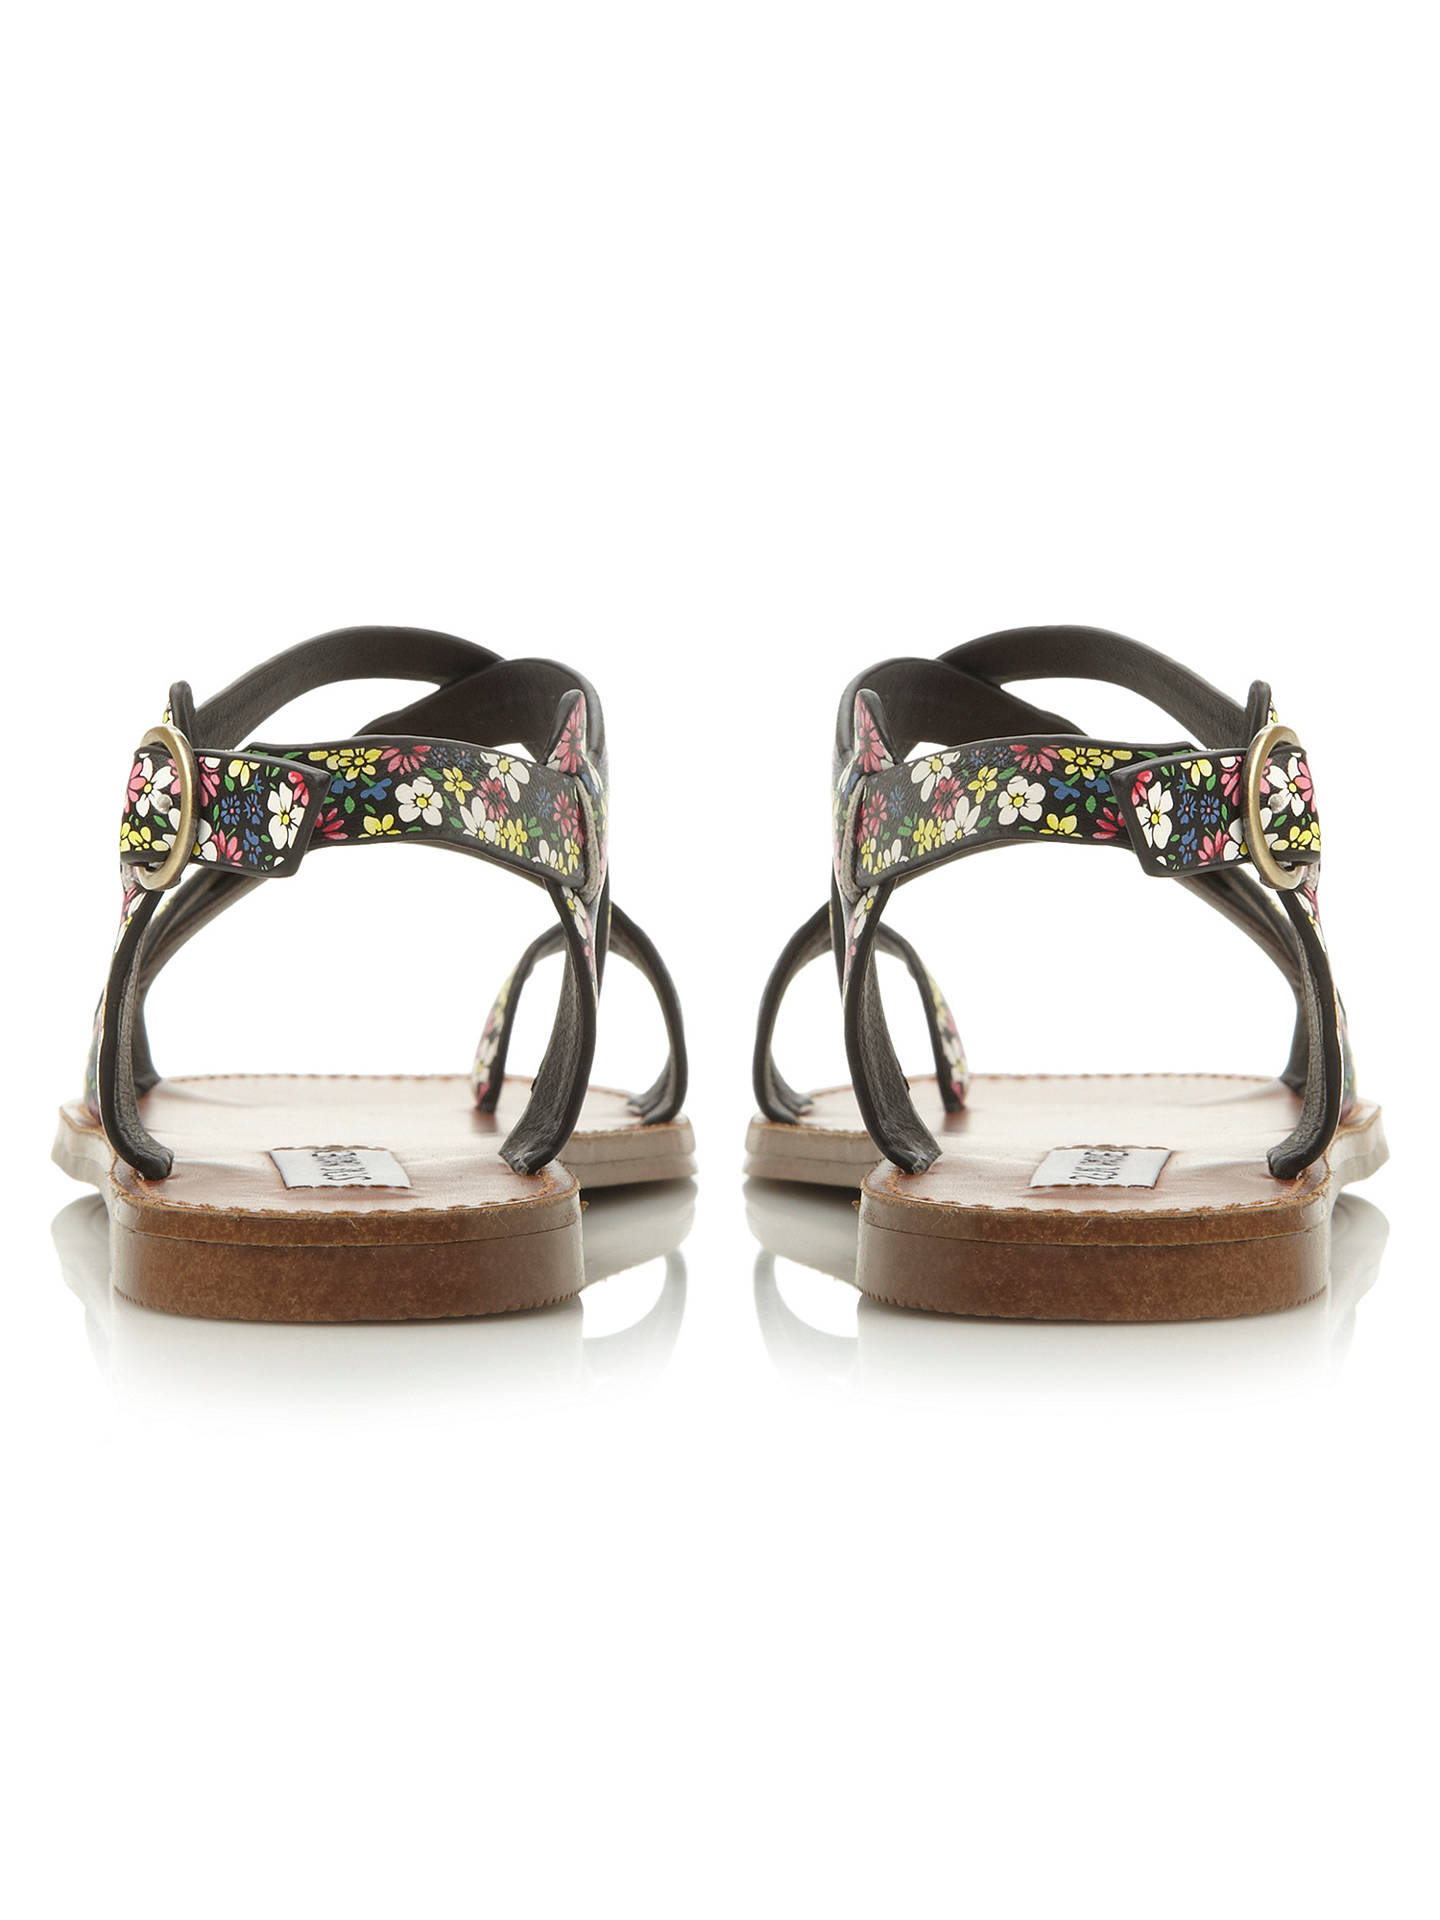 28200a4fbf9 Steve Madden Agathist Sandals at John Lewis & Partners